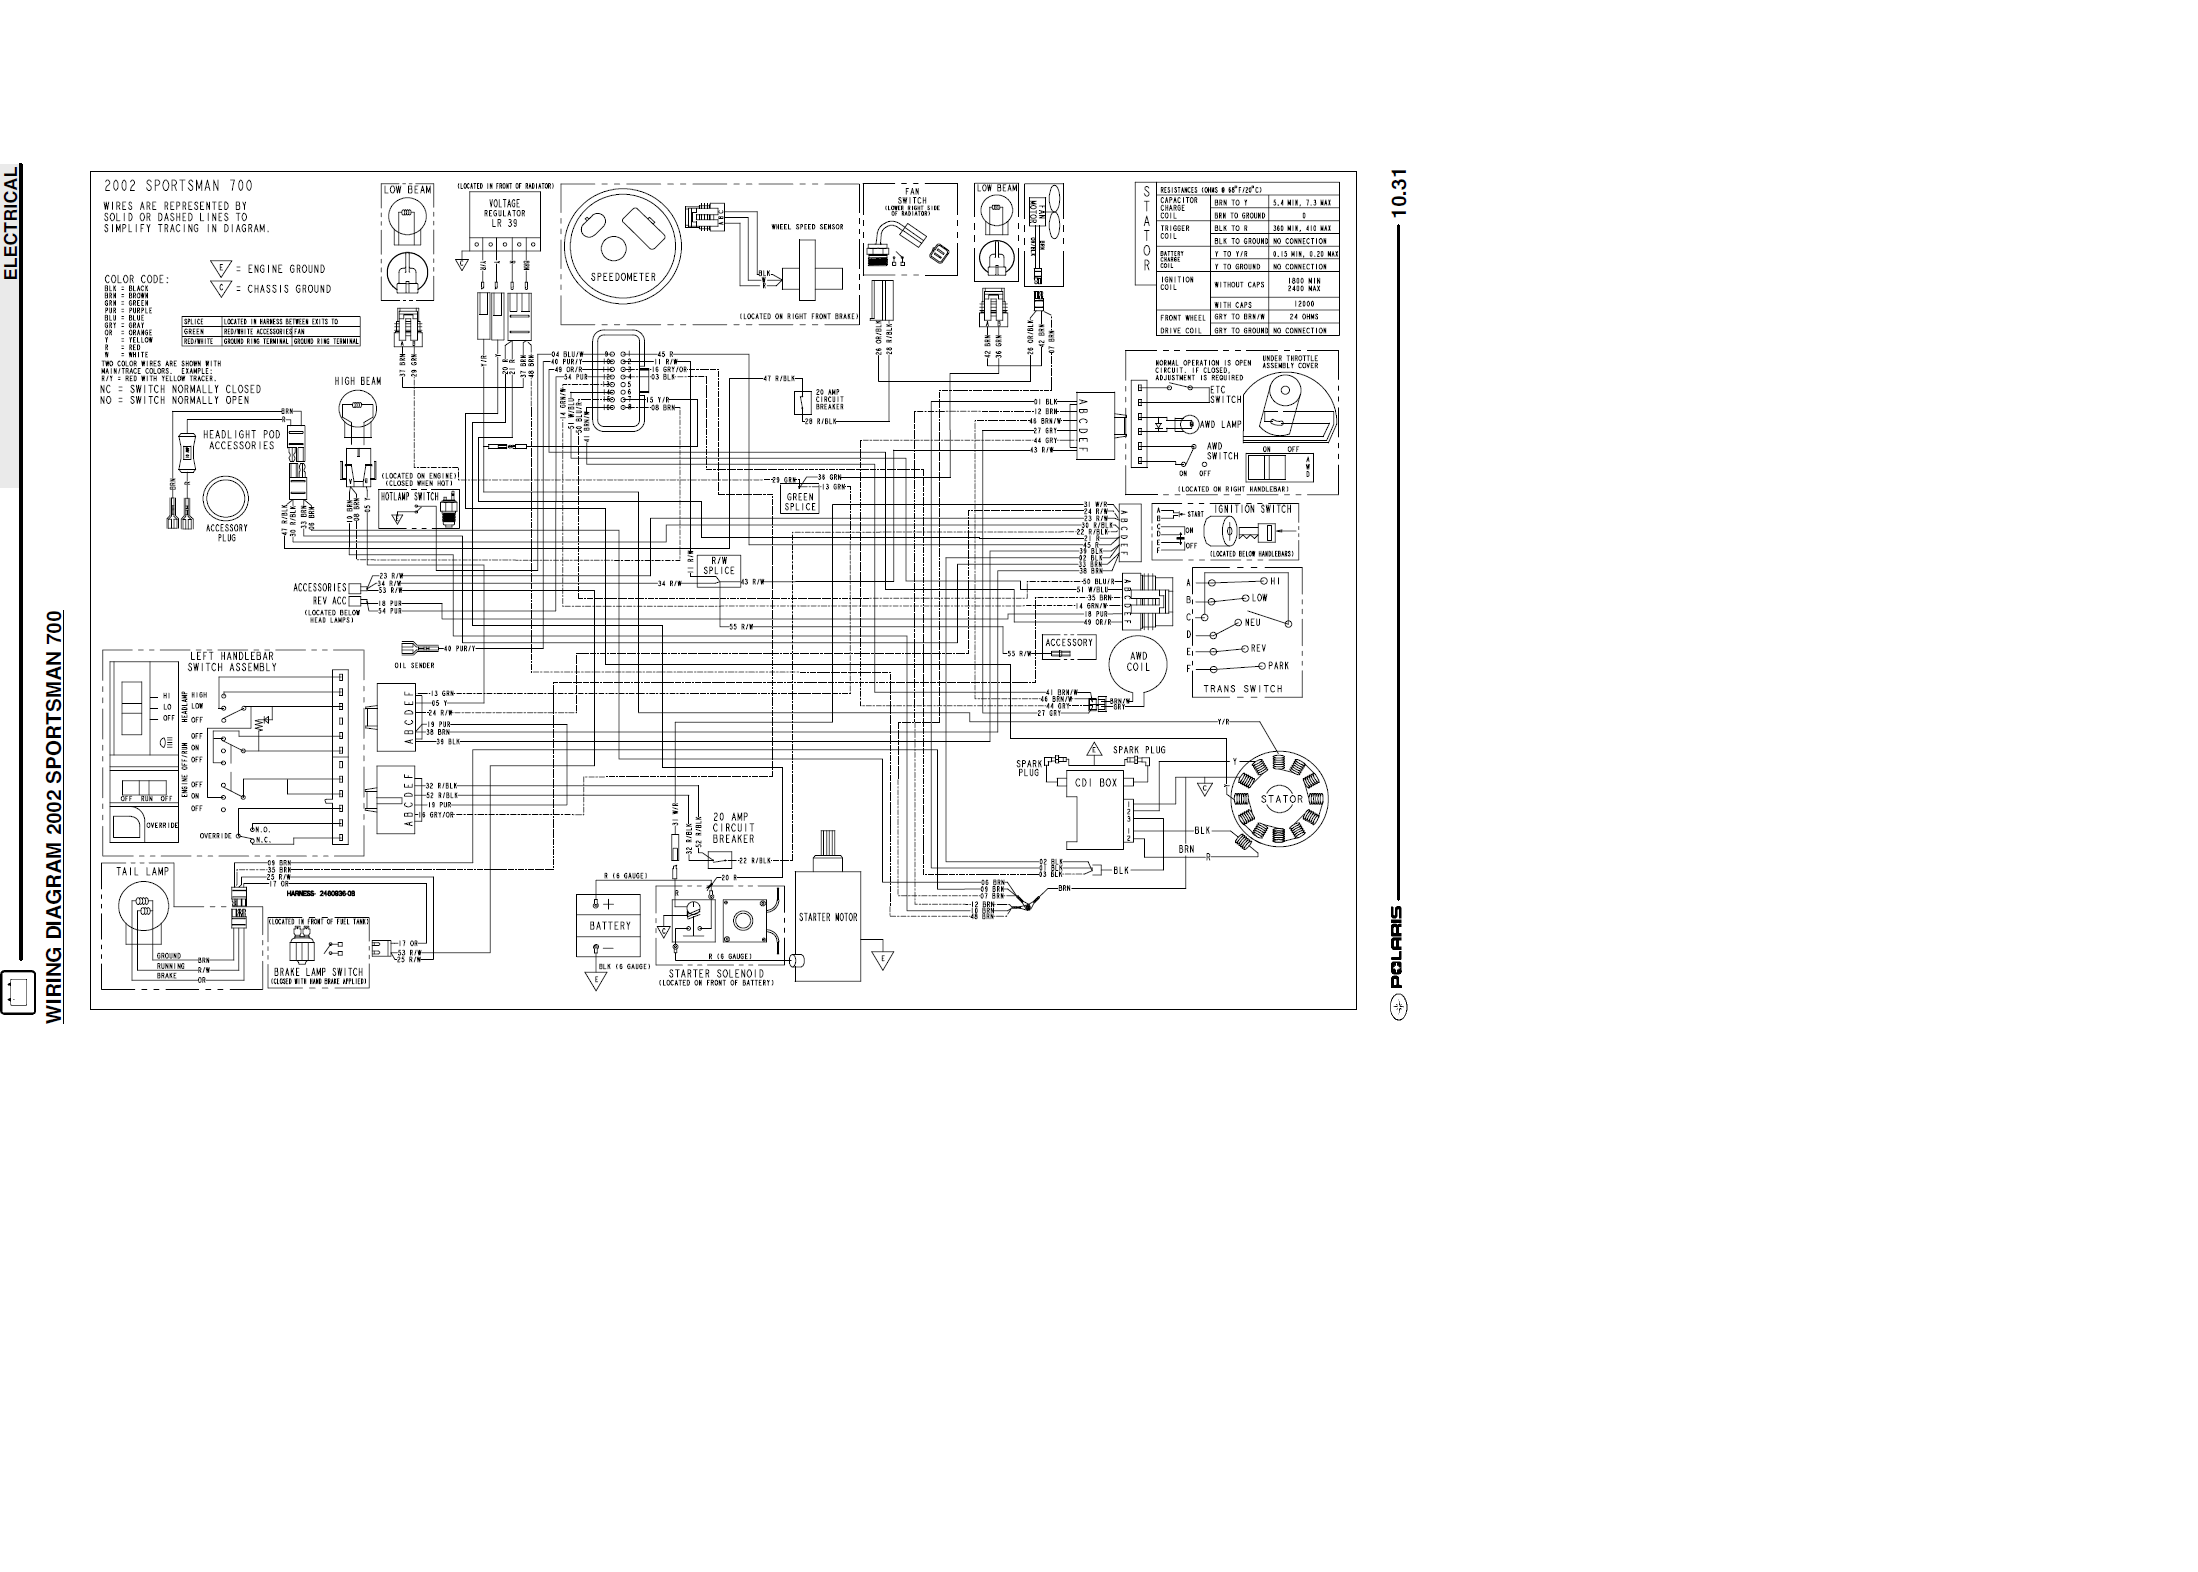 2014 rzr 900 wiring diagram